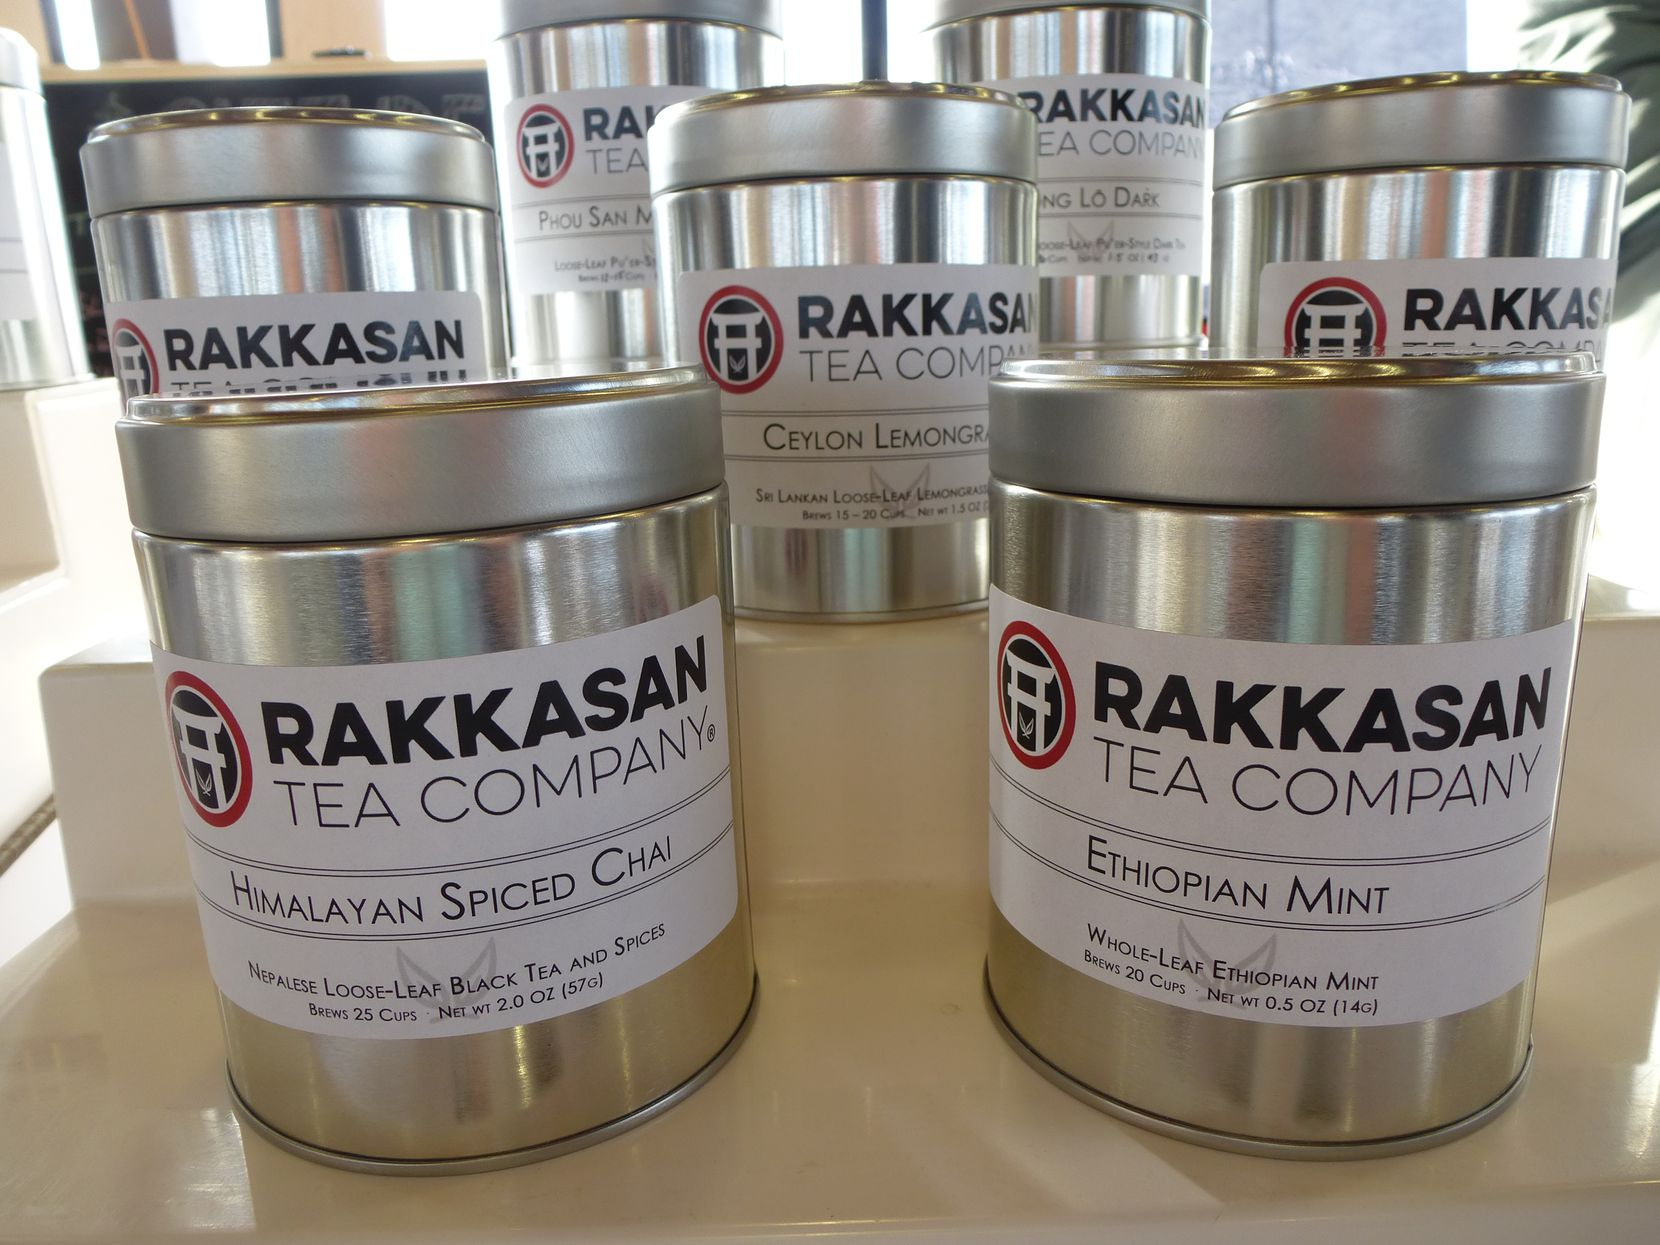 Among its wide selection of teas from strife-torn areas of the world, Rakkasan Tea Co. brings in Himalayan Spiced Chai and Ethiopian Mint especially for the holidays.